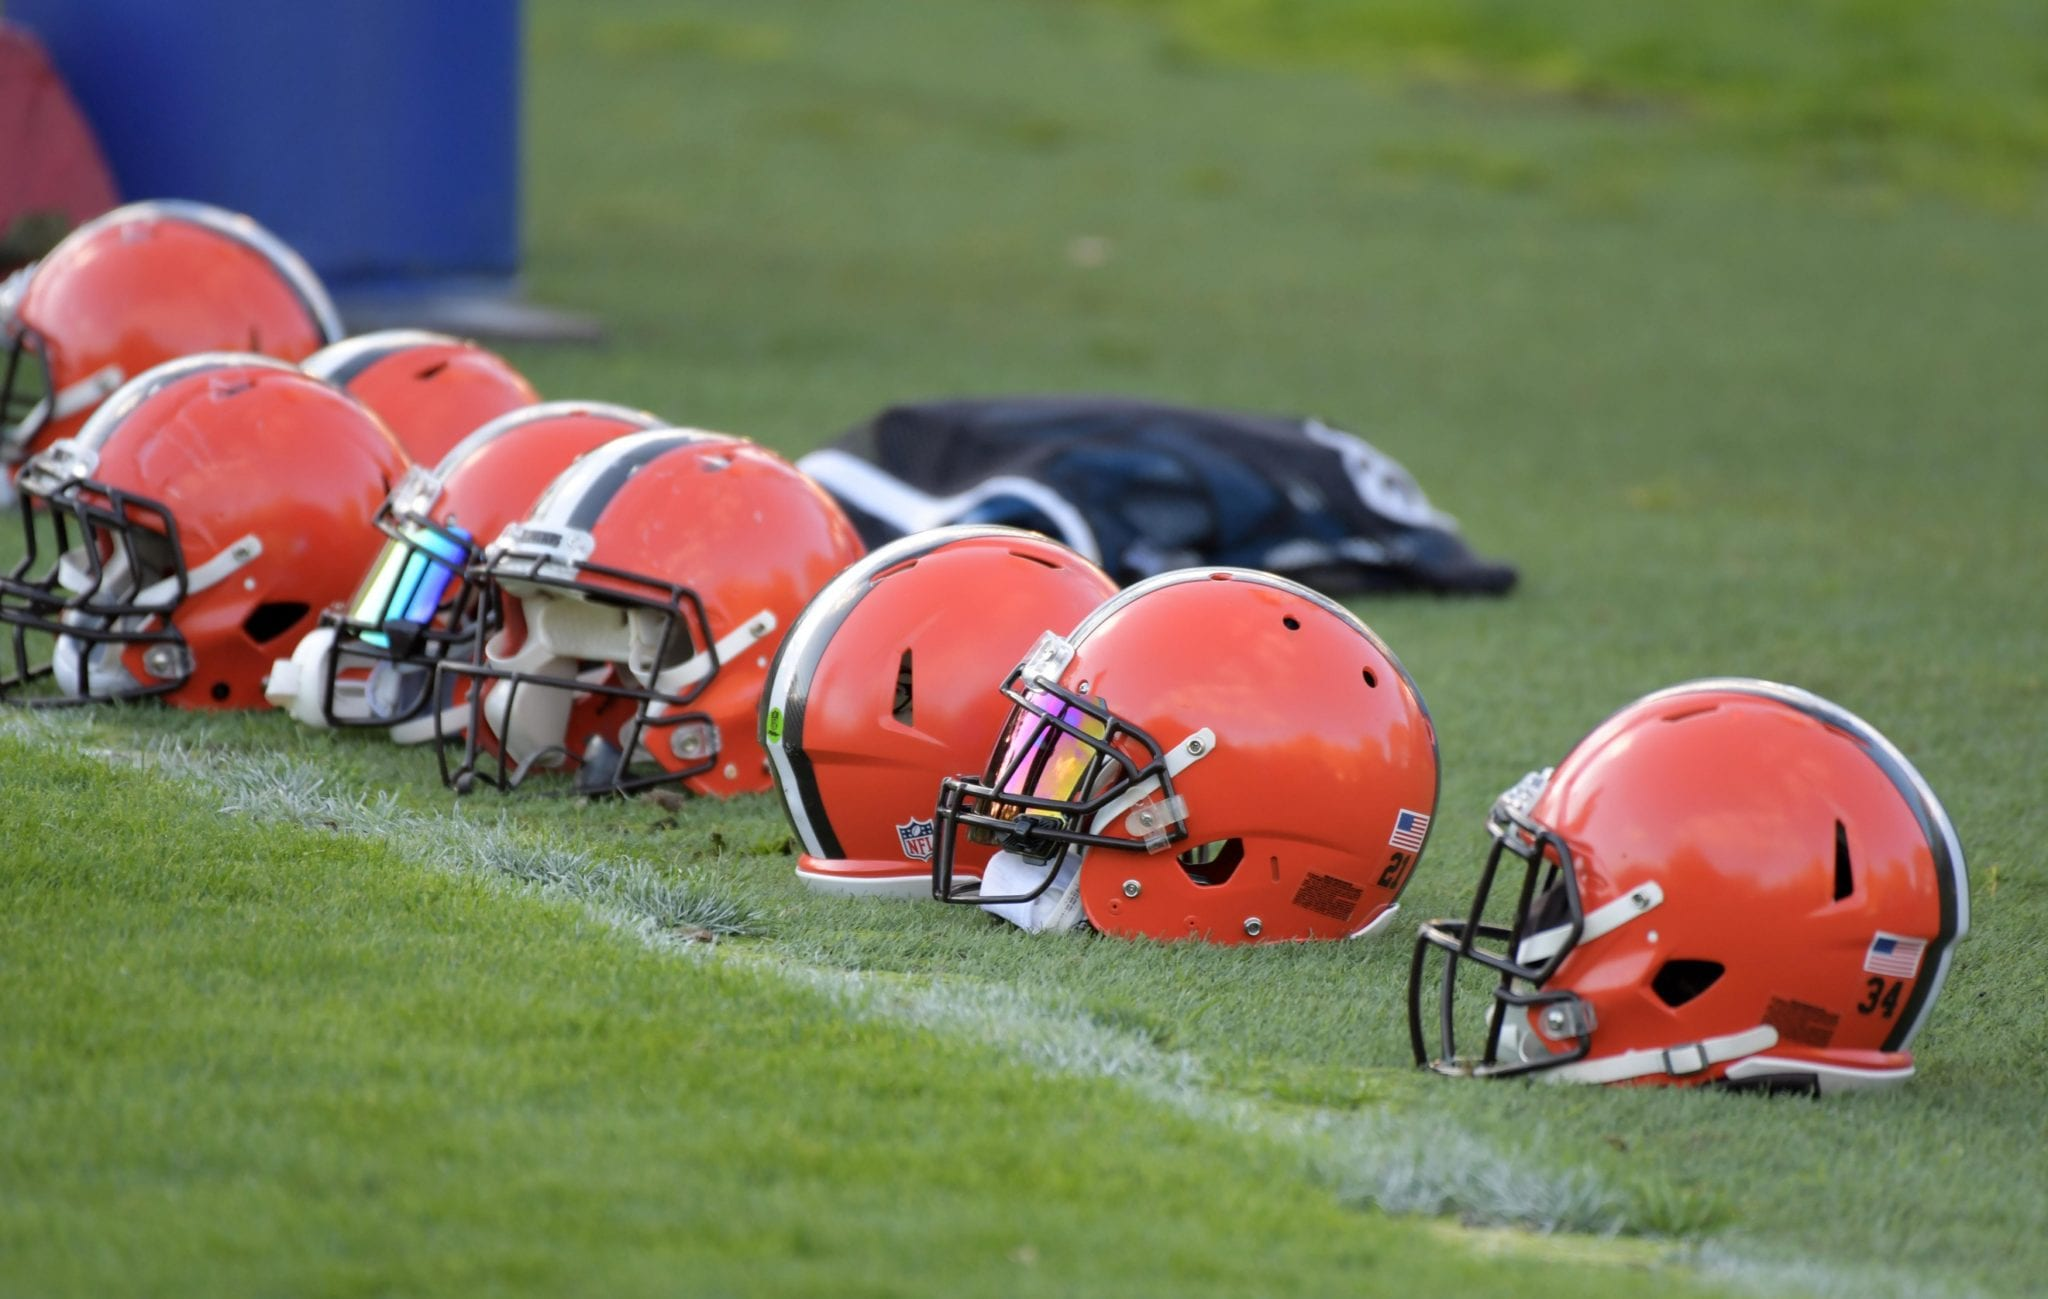 Browns-helmet-7